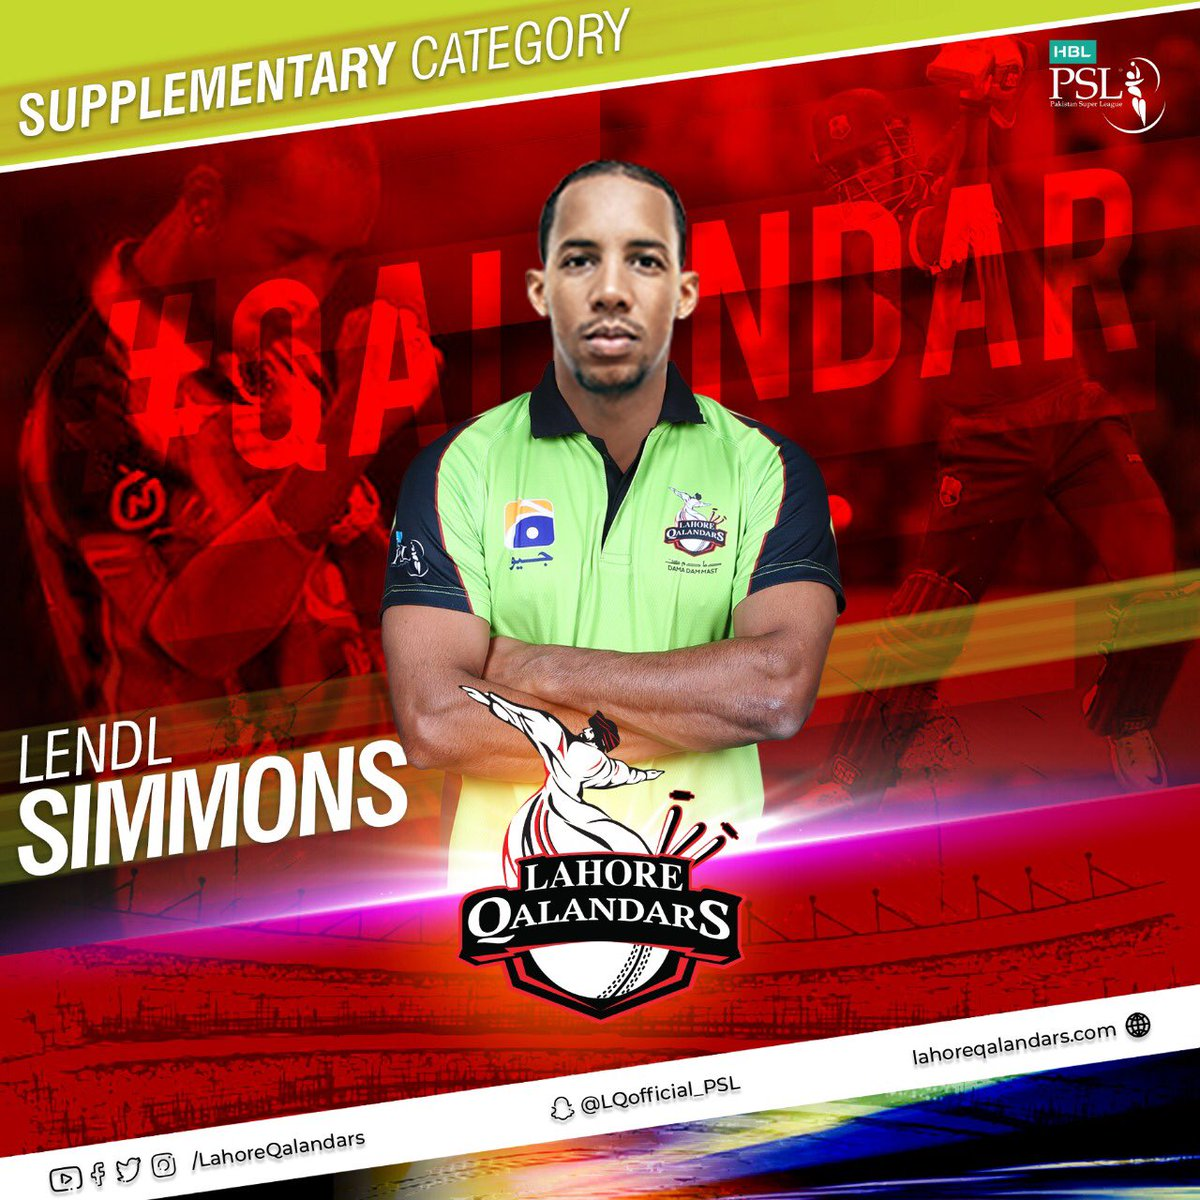 West Indies 🔝order batsman @54simmo joins the Lahore Qalandars squad! A warm welcome to him in the Qalandars family for the 5th edition of #HBLPSL! #DamaDamMast #MainHoonQalandar #HBLPSLDraft2019